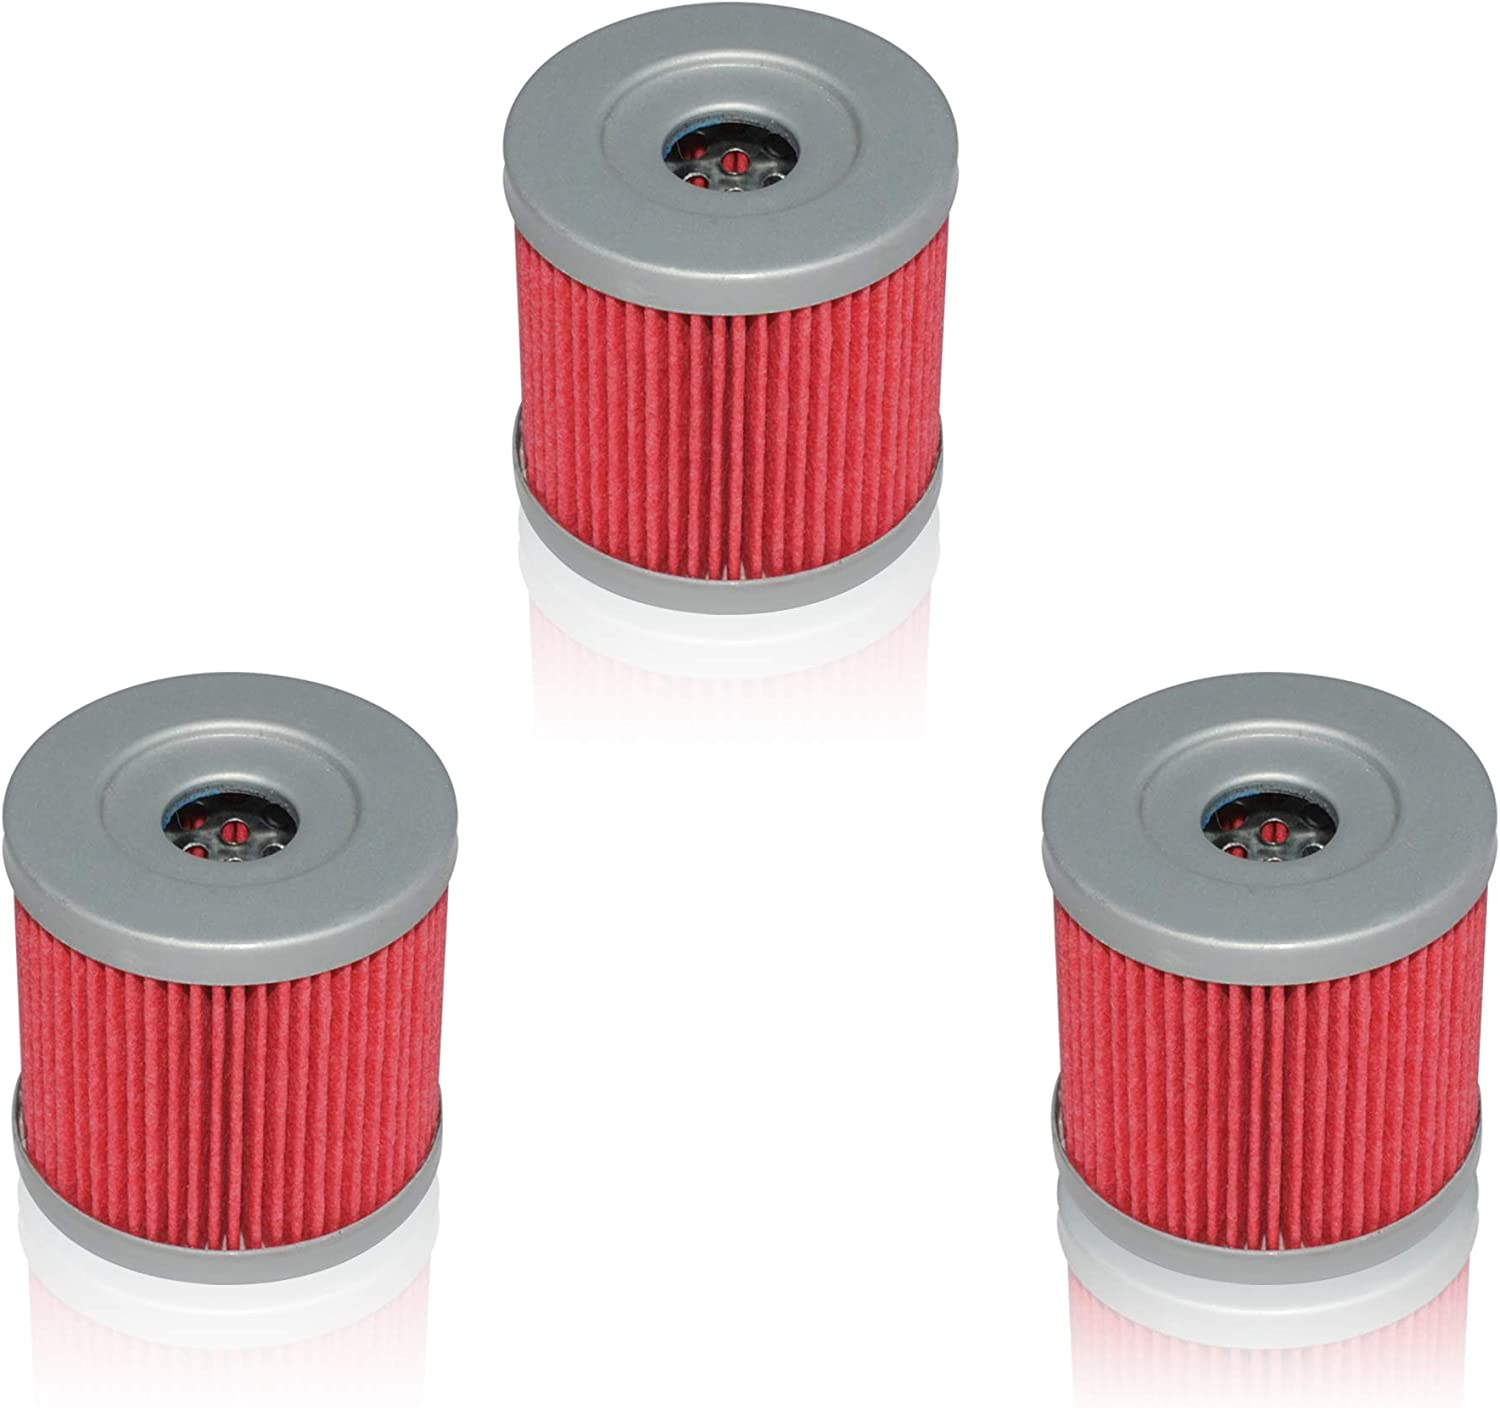 DRZ 400 Road 2003 High Quality Replacement Oil Filter